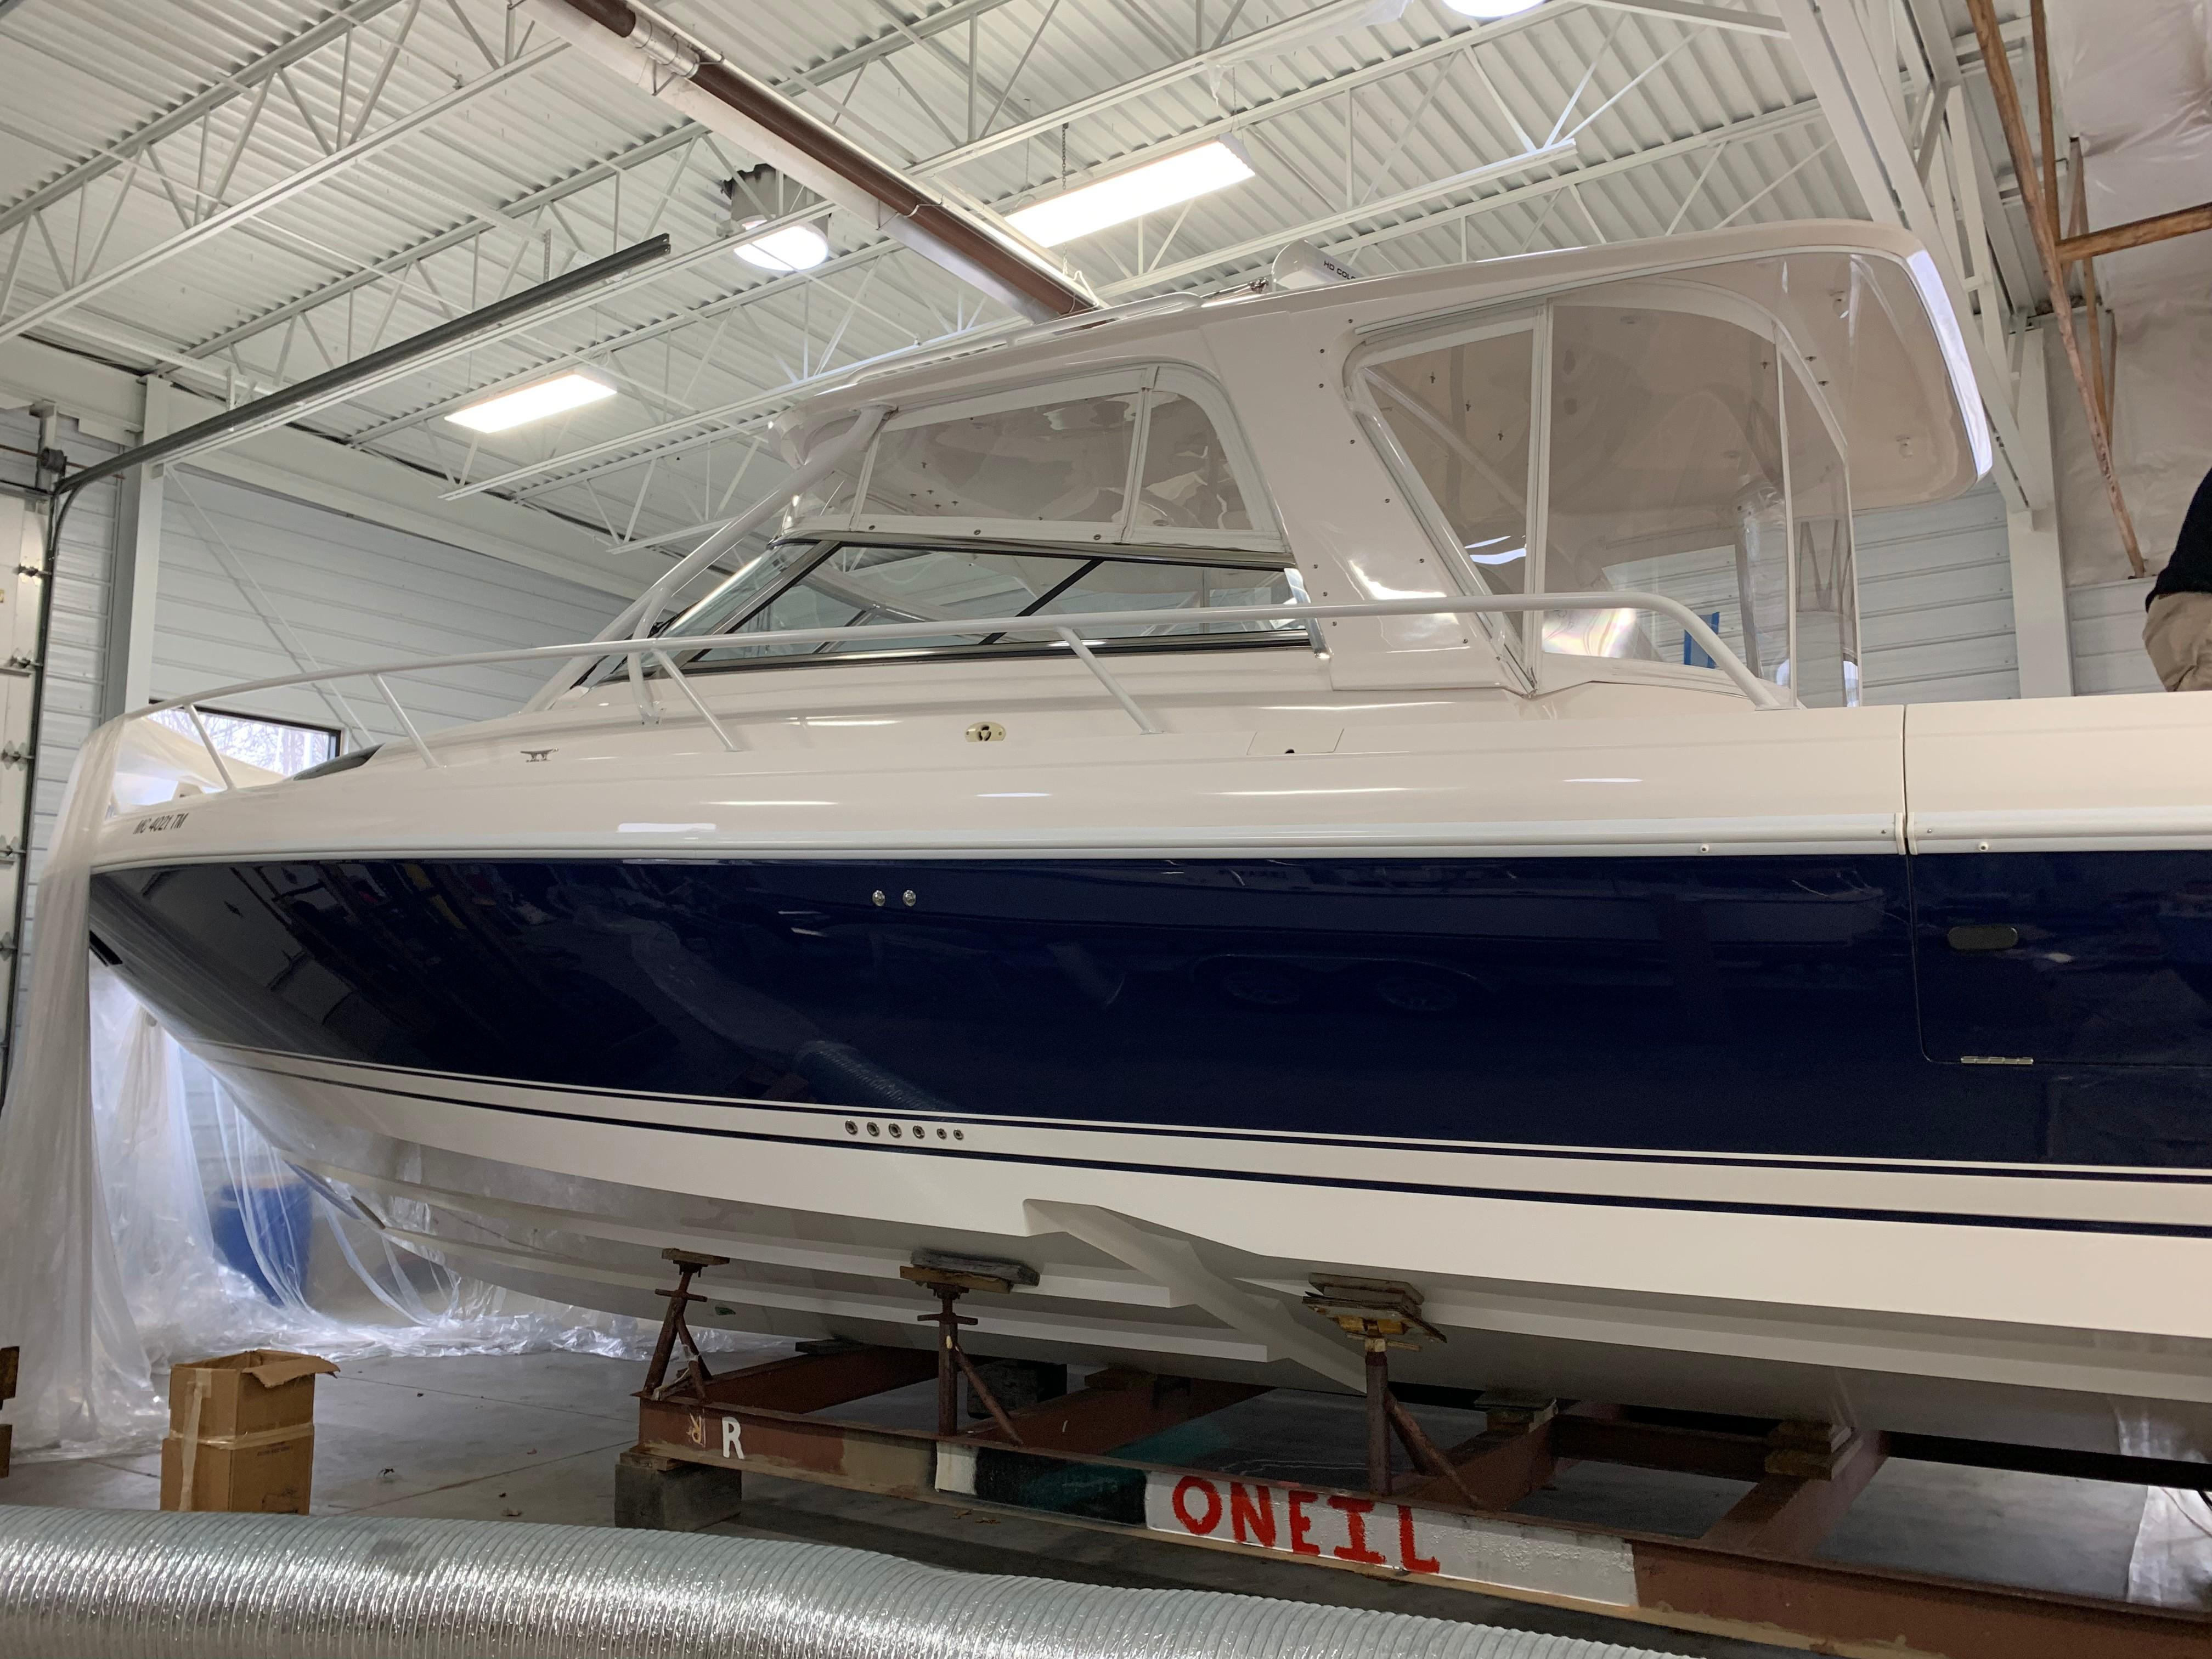 43 Intrepid 2013 Holland Michigan Sold On 2018 12 20 By